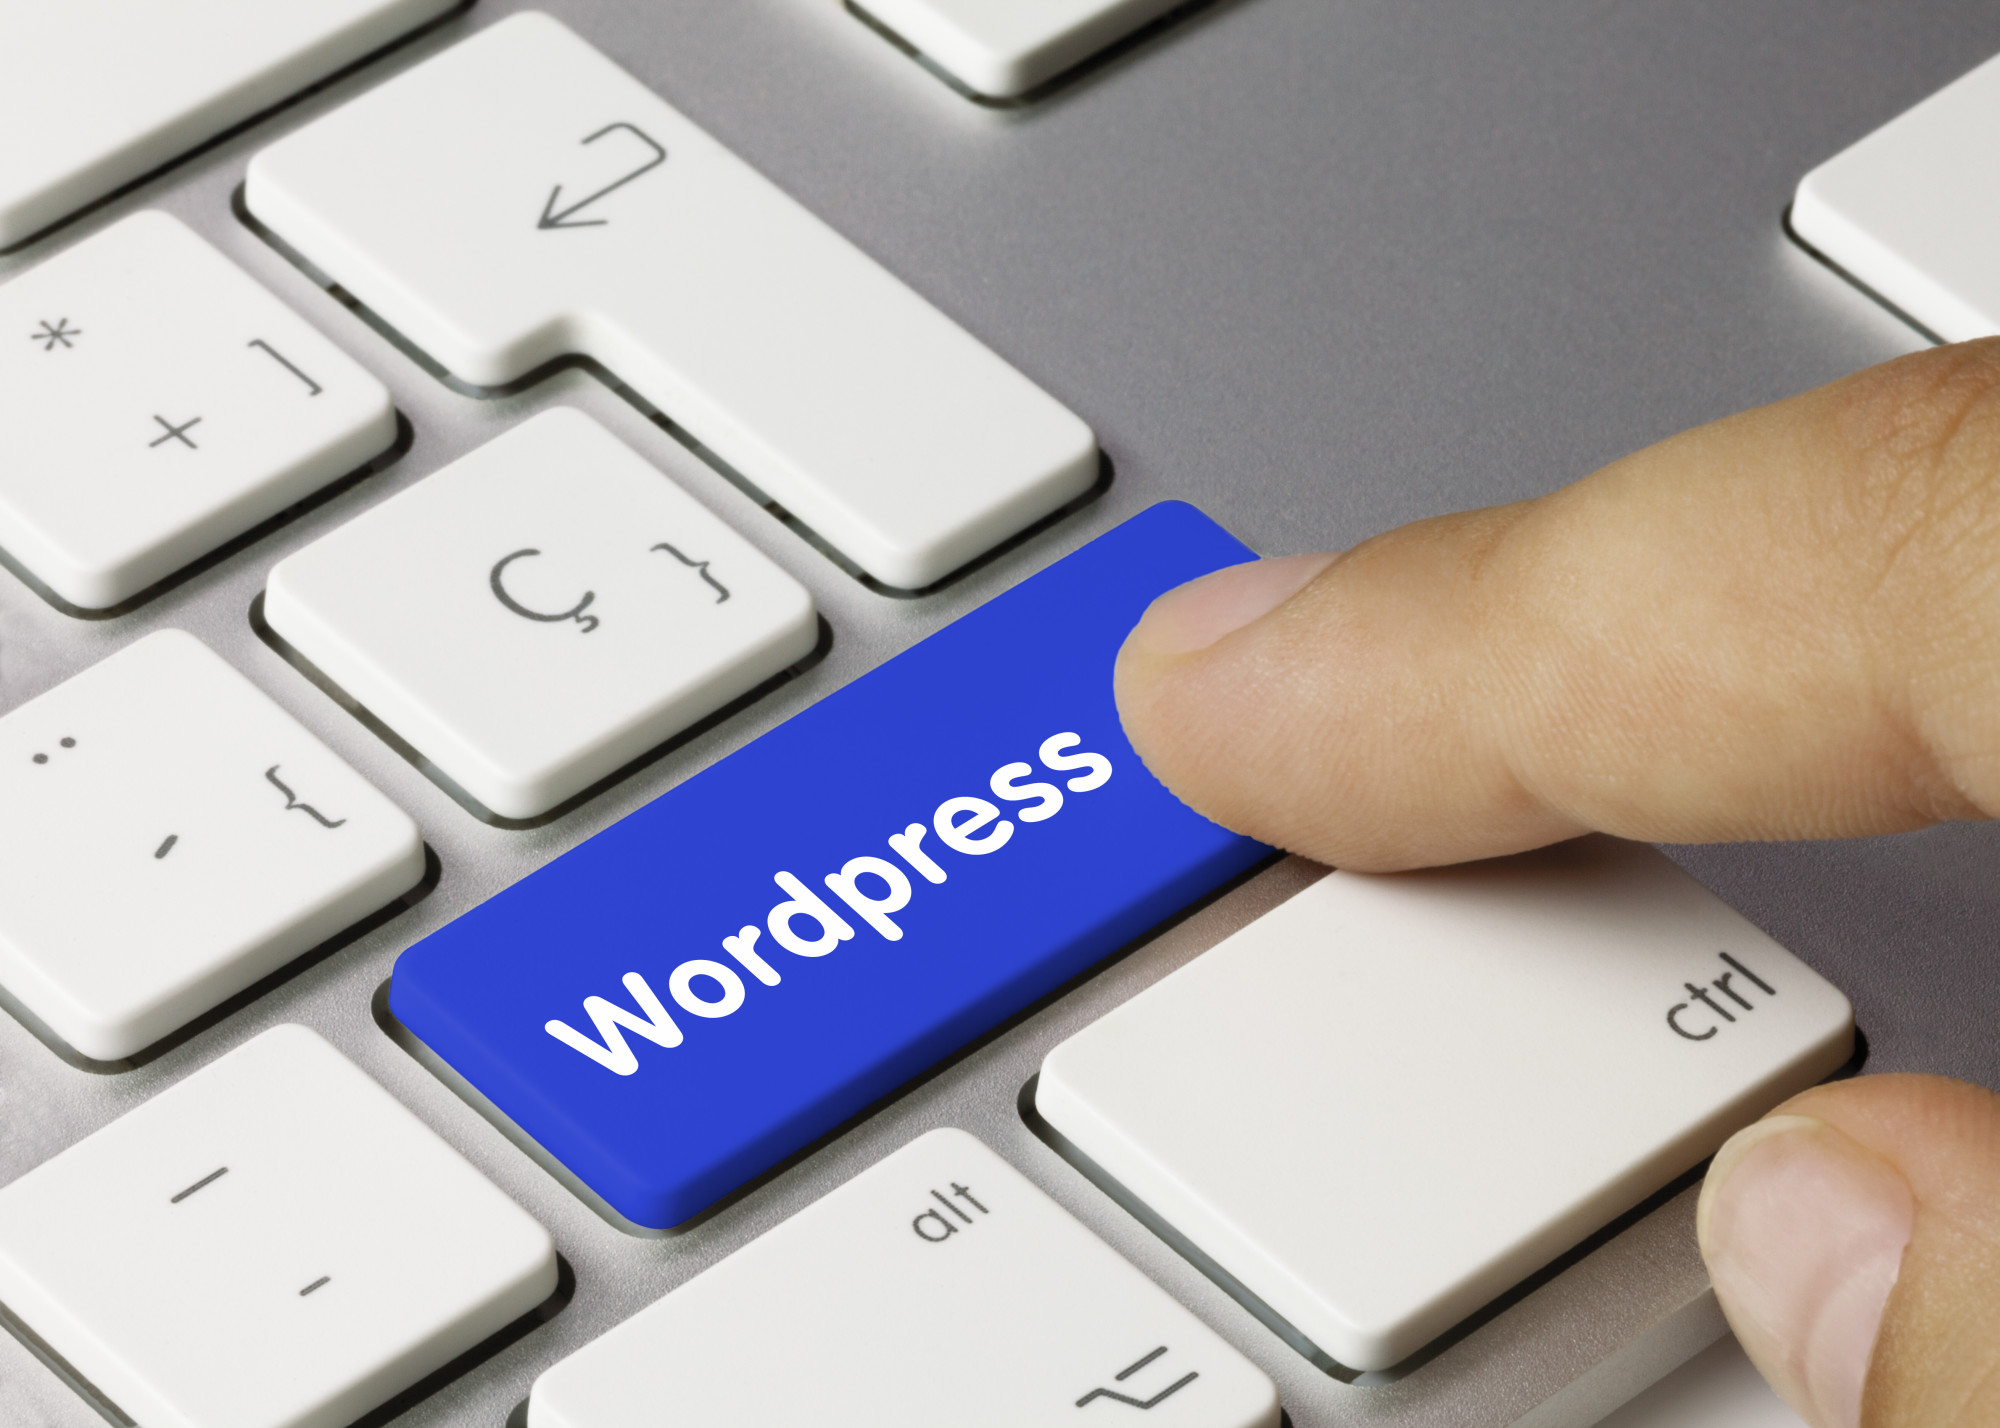 wordpress button on keyboard